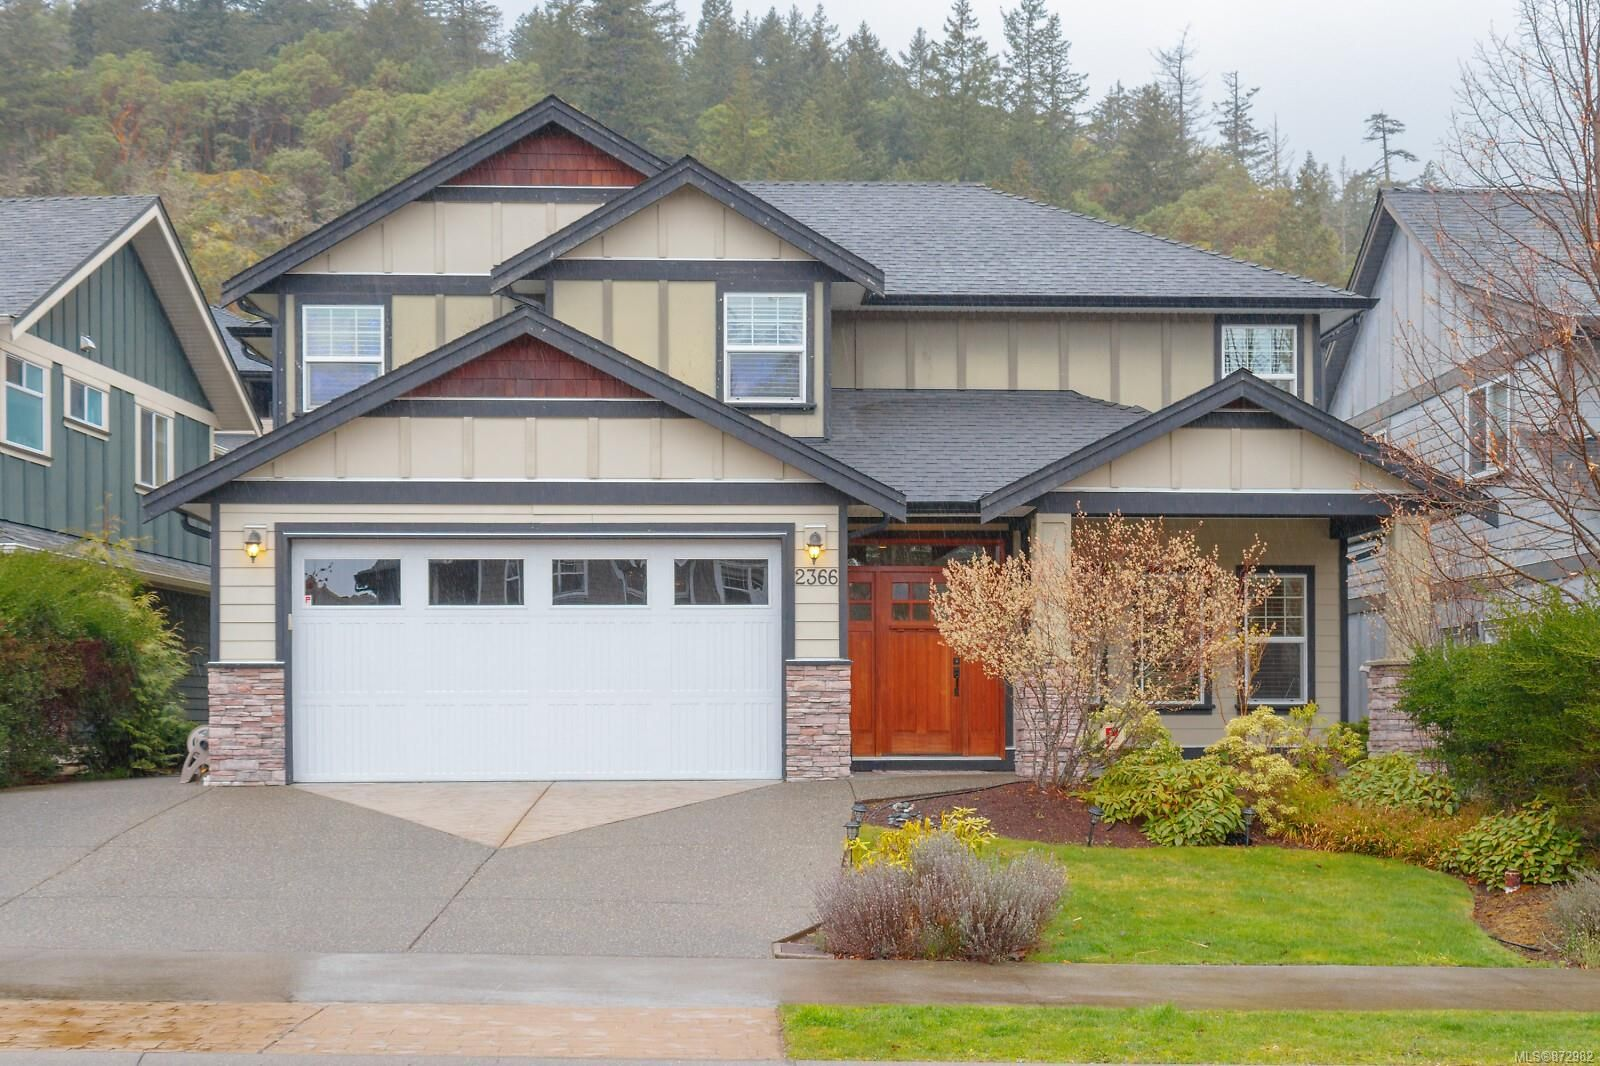 Main Photo: 2366 Echo Valley Dr in : La Bear Mountain House for sale (Langford)  : MLS®# 872982